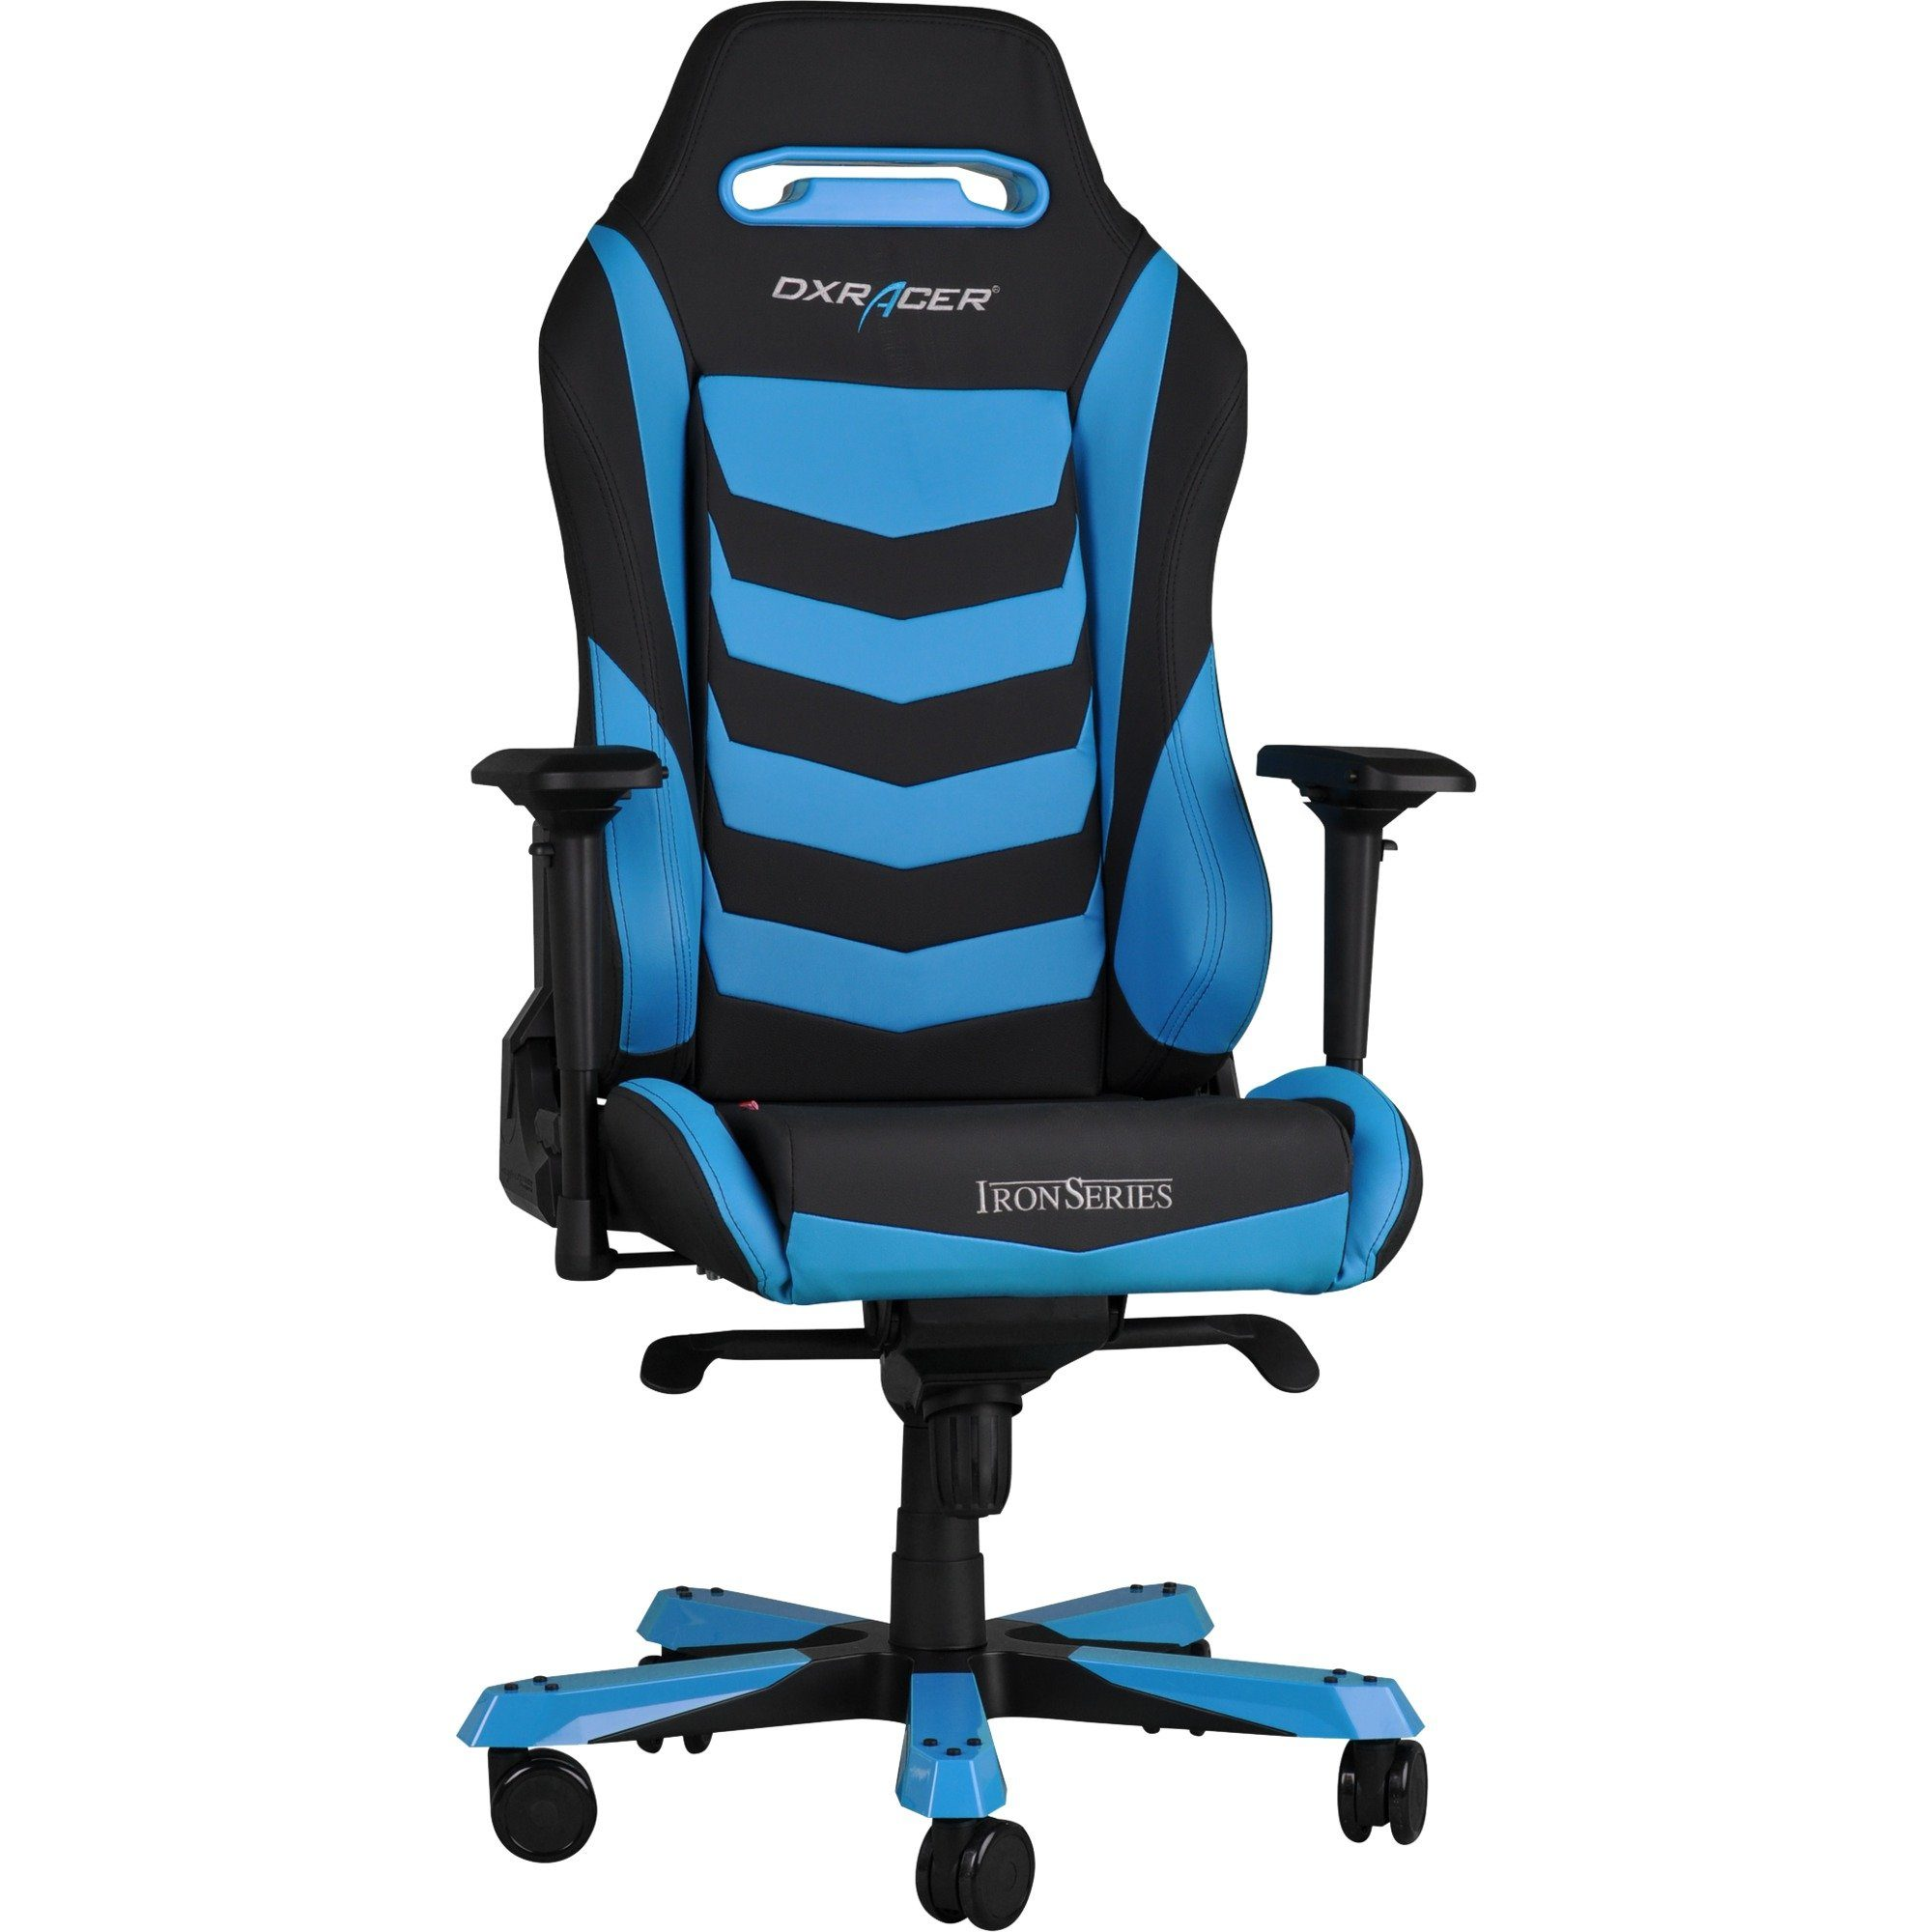 DXRacer Spielsitz »Iron Gaming Chair (OH/IS166/NB)«